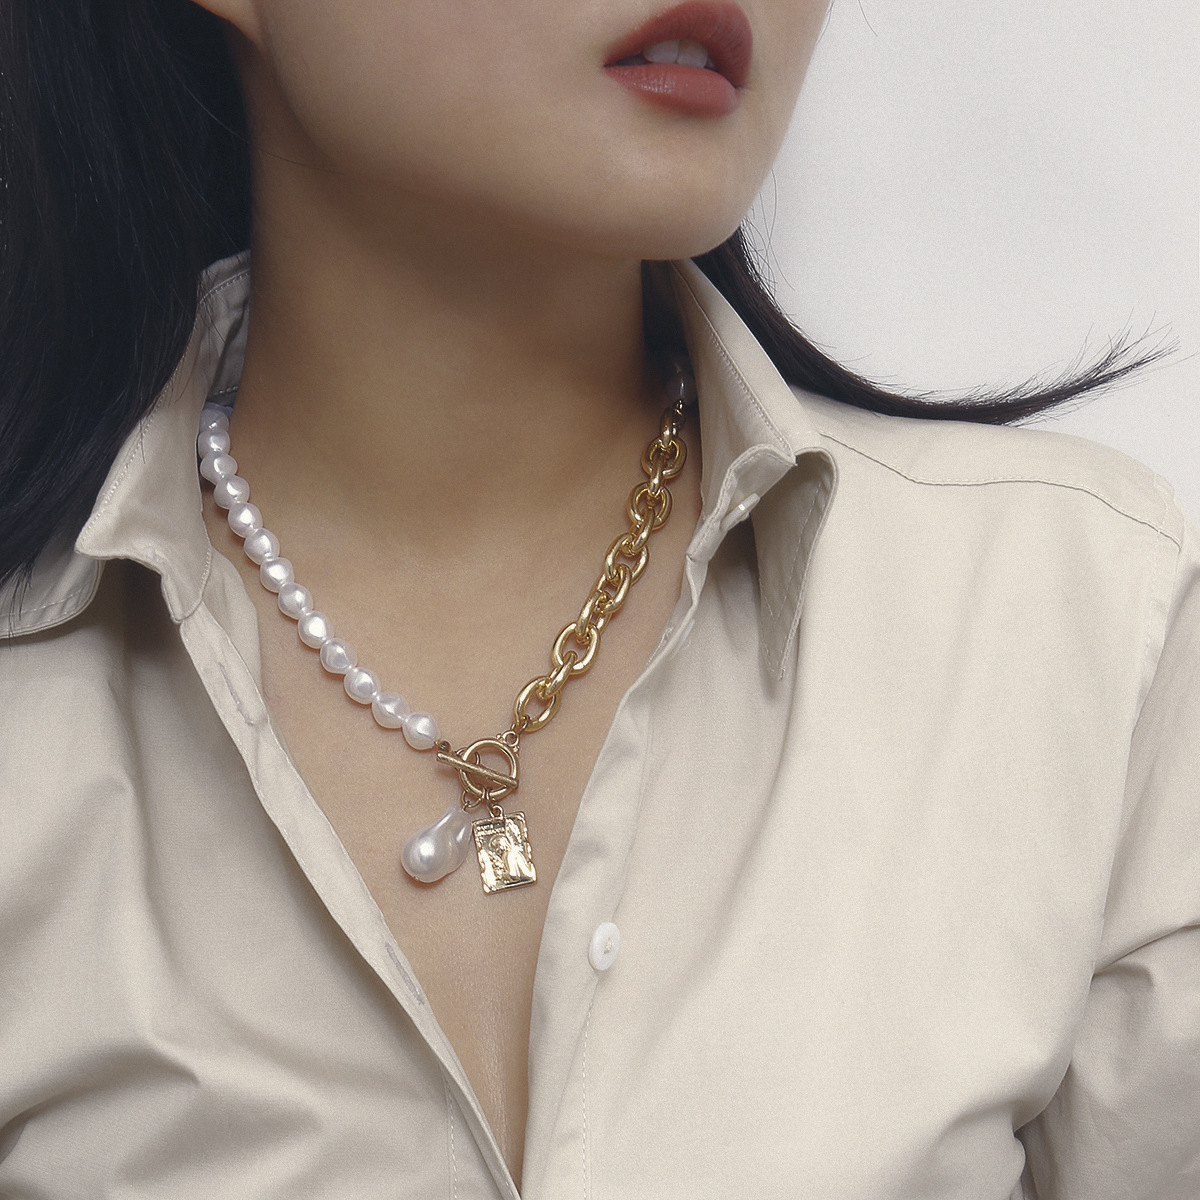 Baroque Imitation Pearl Alloy Angel Pendants Necklaces for Women Gold Color Clavicle Chain 2020 Fashion Jewelry Choker New